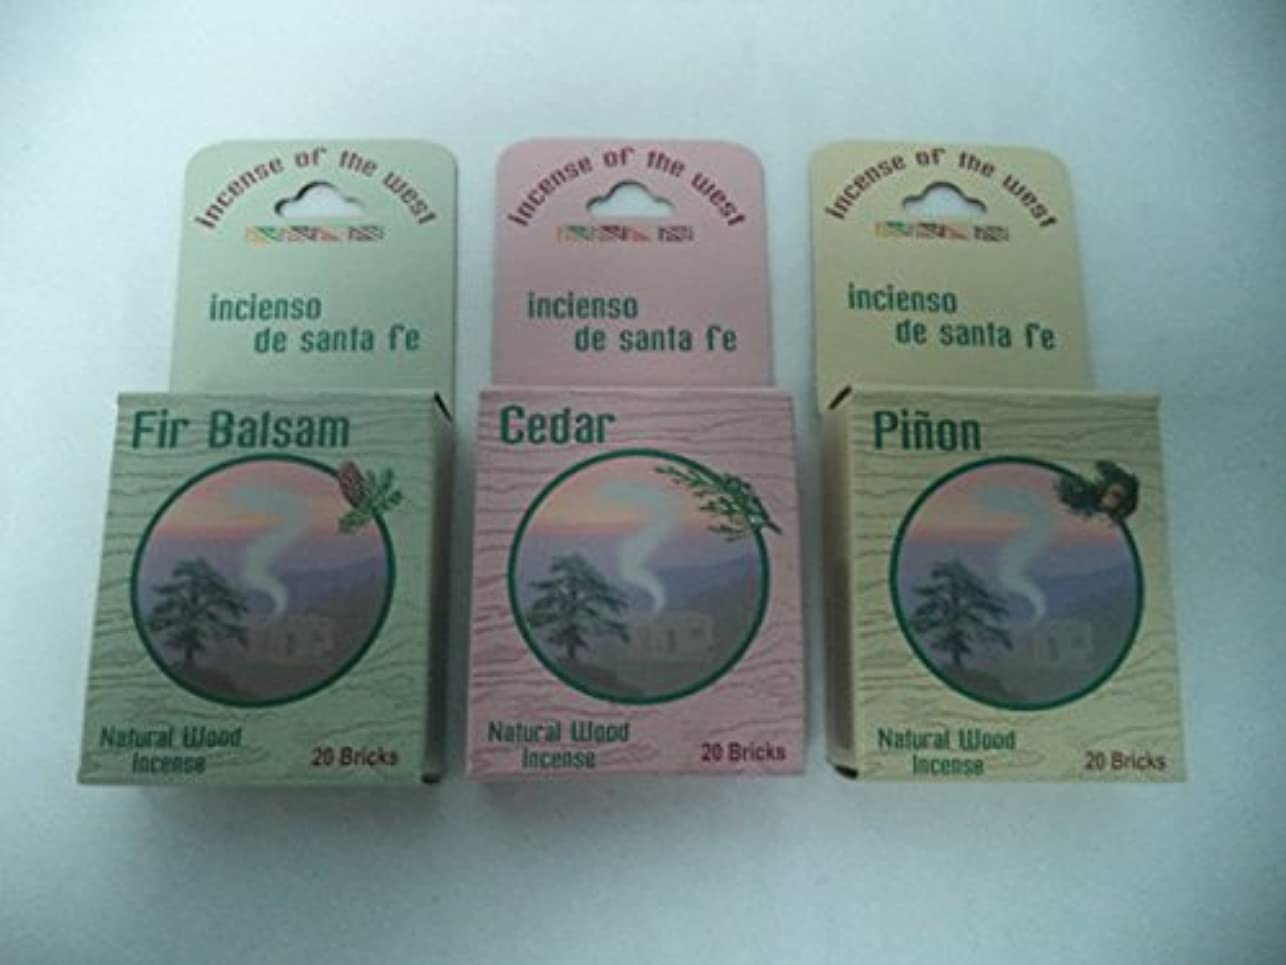 骨折与える良性Balsam Fir 20 + Cedar 20 + Pinon Pine 20: 60 CHRISTMAS INCENSE CONES / LOGS by Incienso de Sante Fe